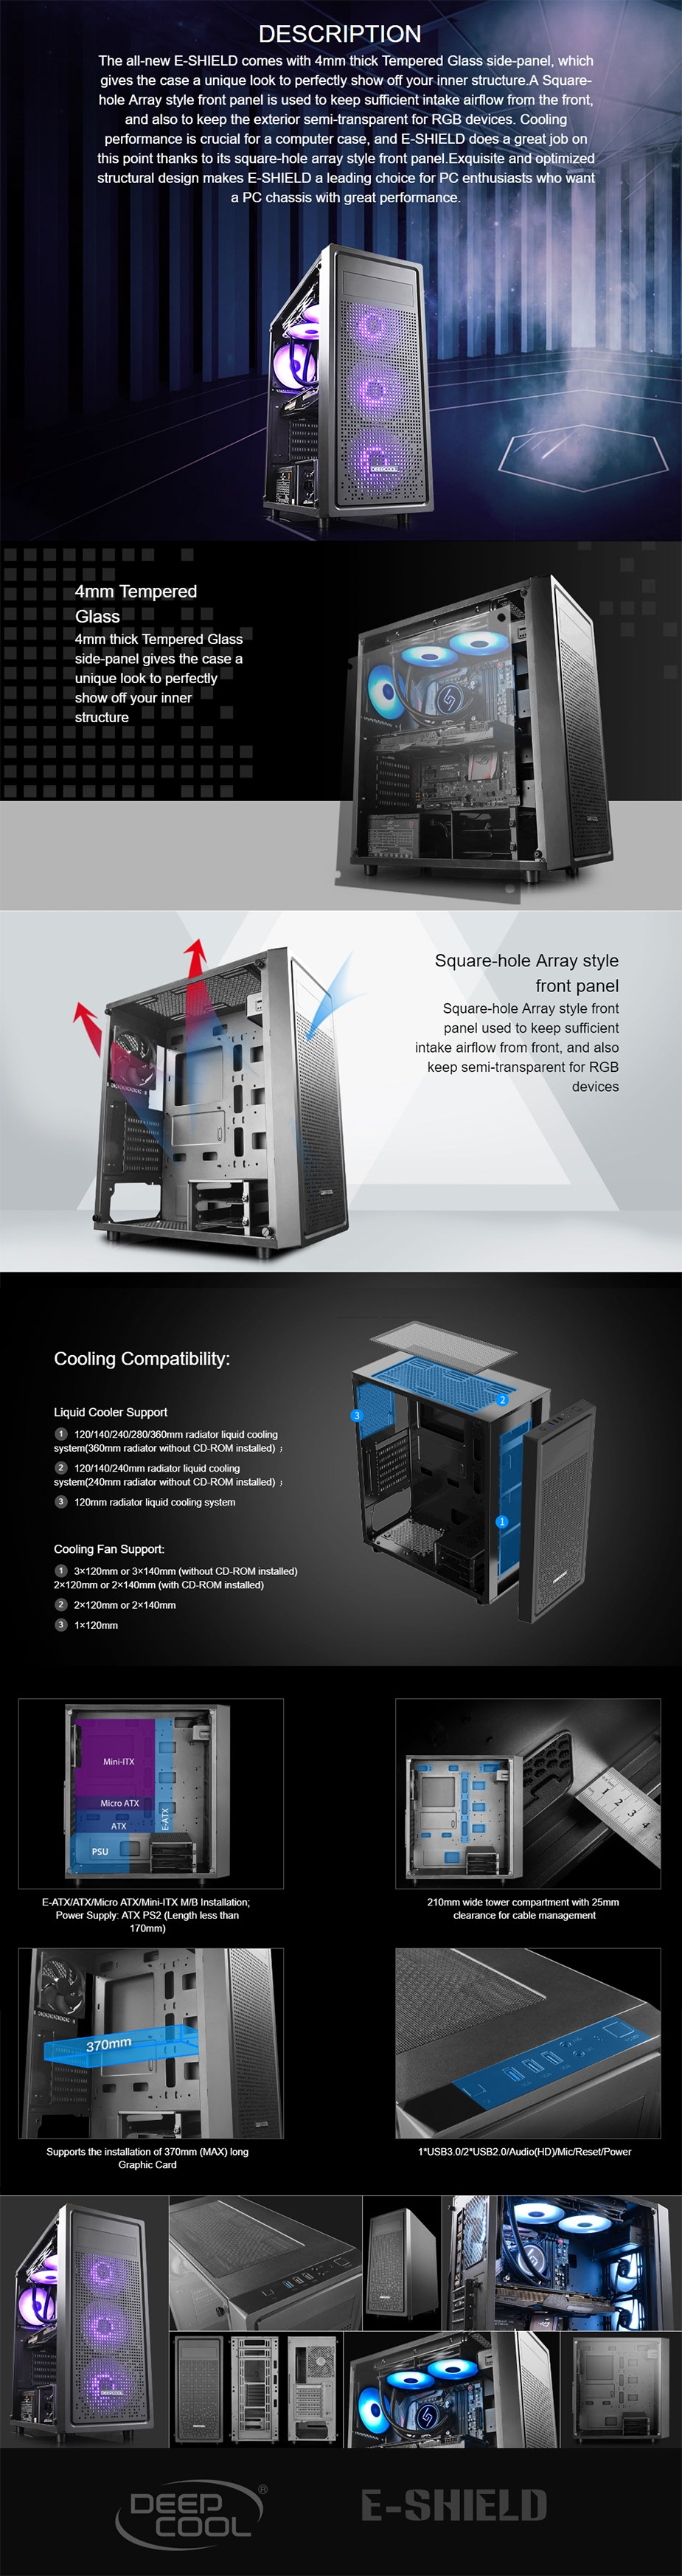 Deepcool E-SHIELD Tempered Glass Mid-Tower E-ATX Case - Desktop Overview 2